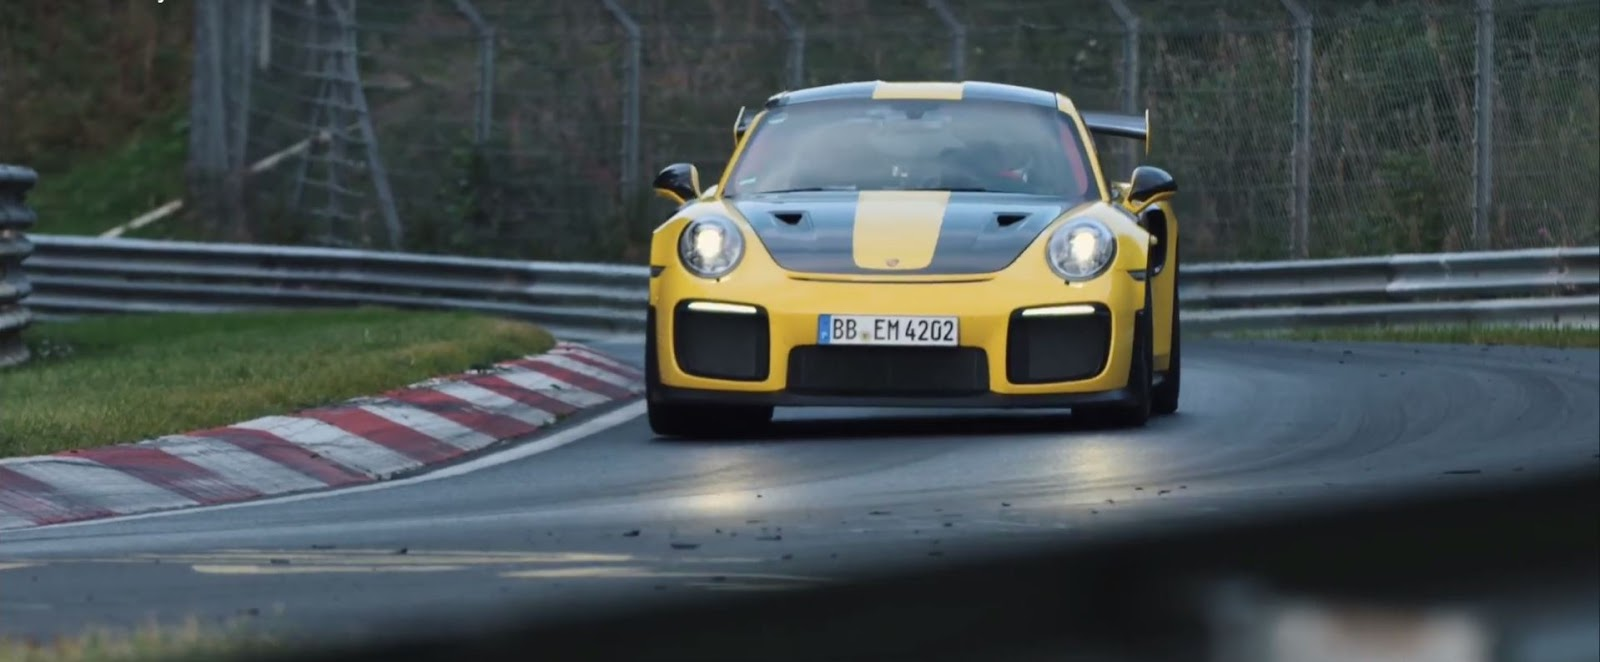 tachometer porsche 911 gt2 rs world record at the n rburgring nordschleife